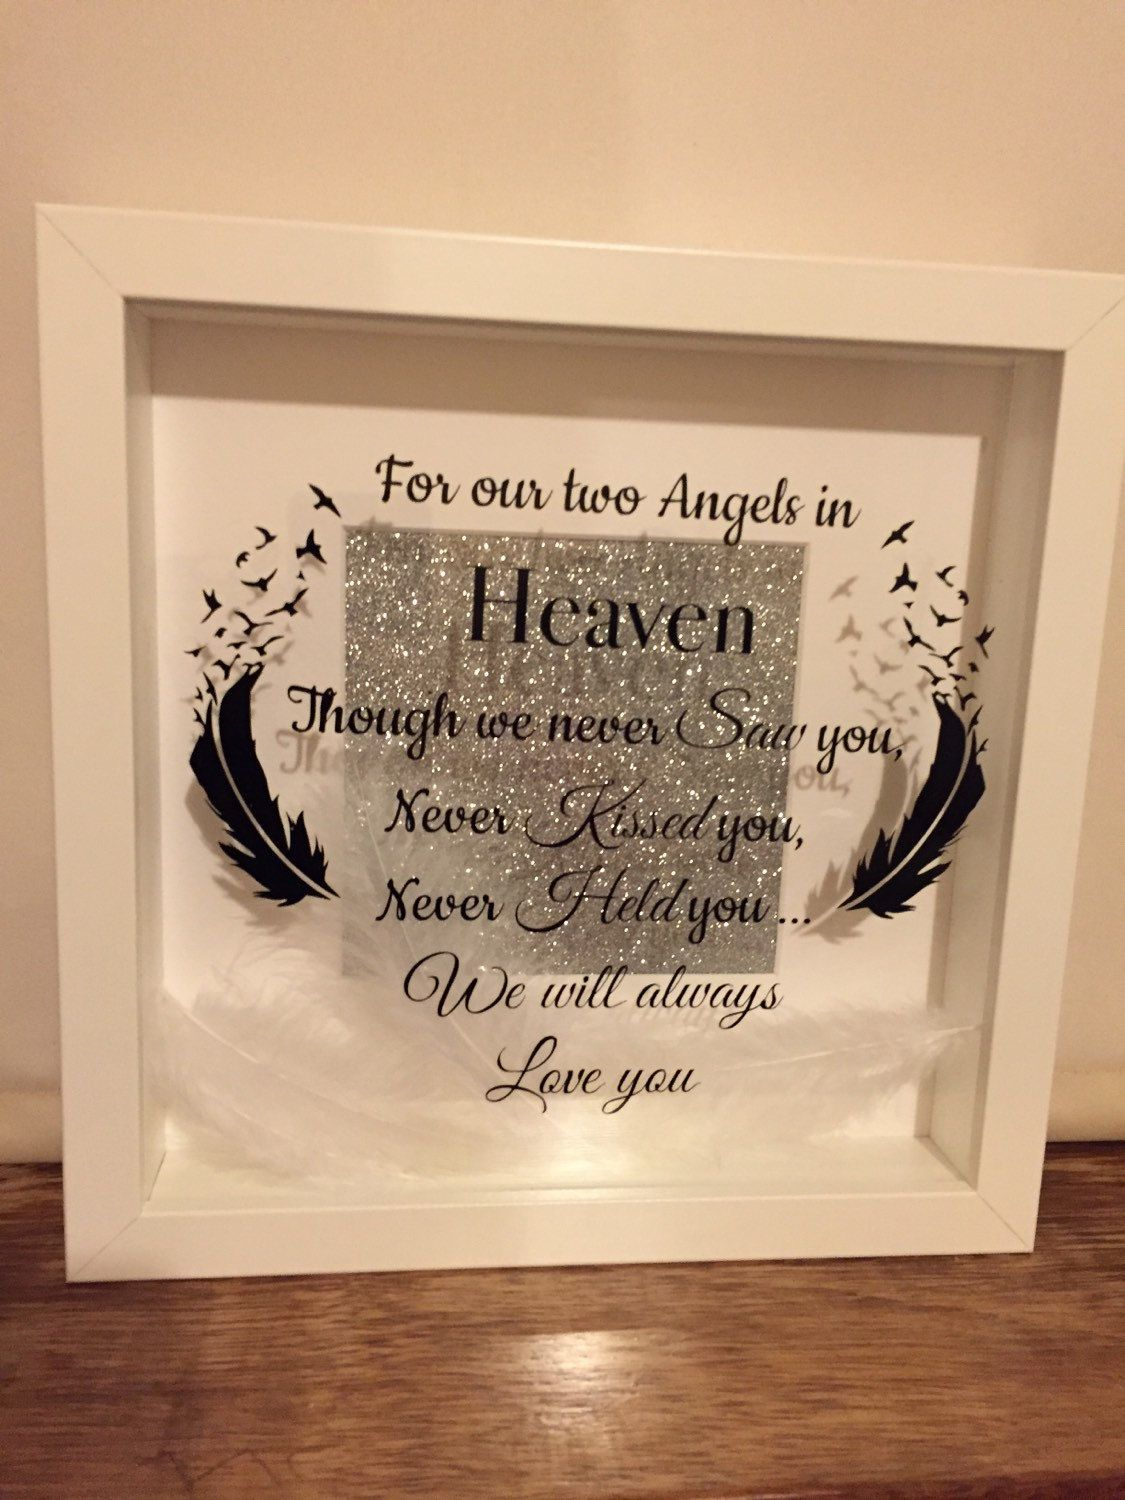 twins multiple baby loss memorial frame lost angel by kearneygifts